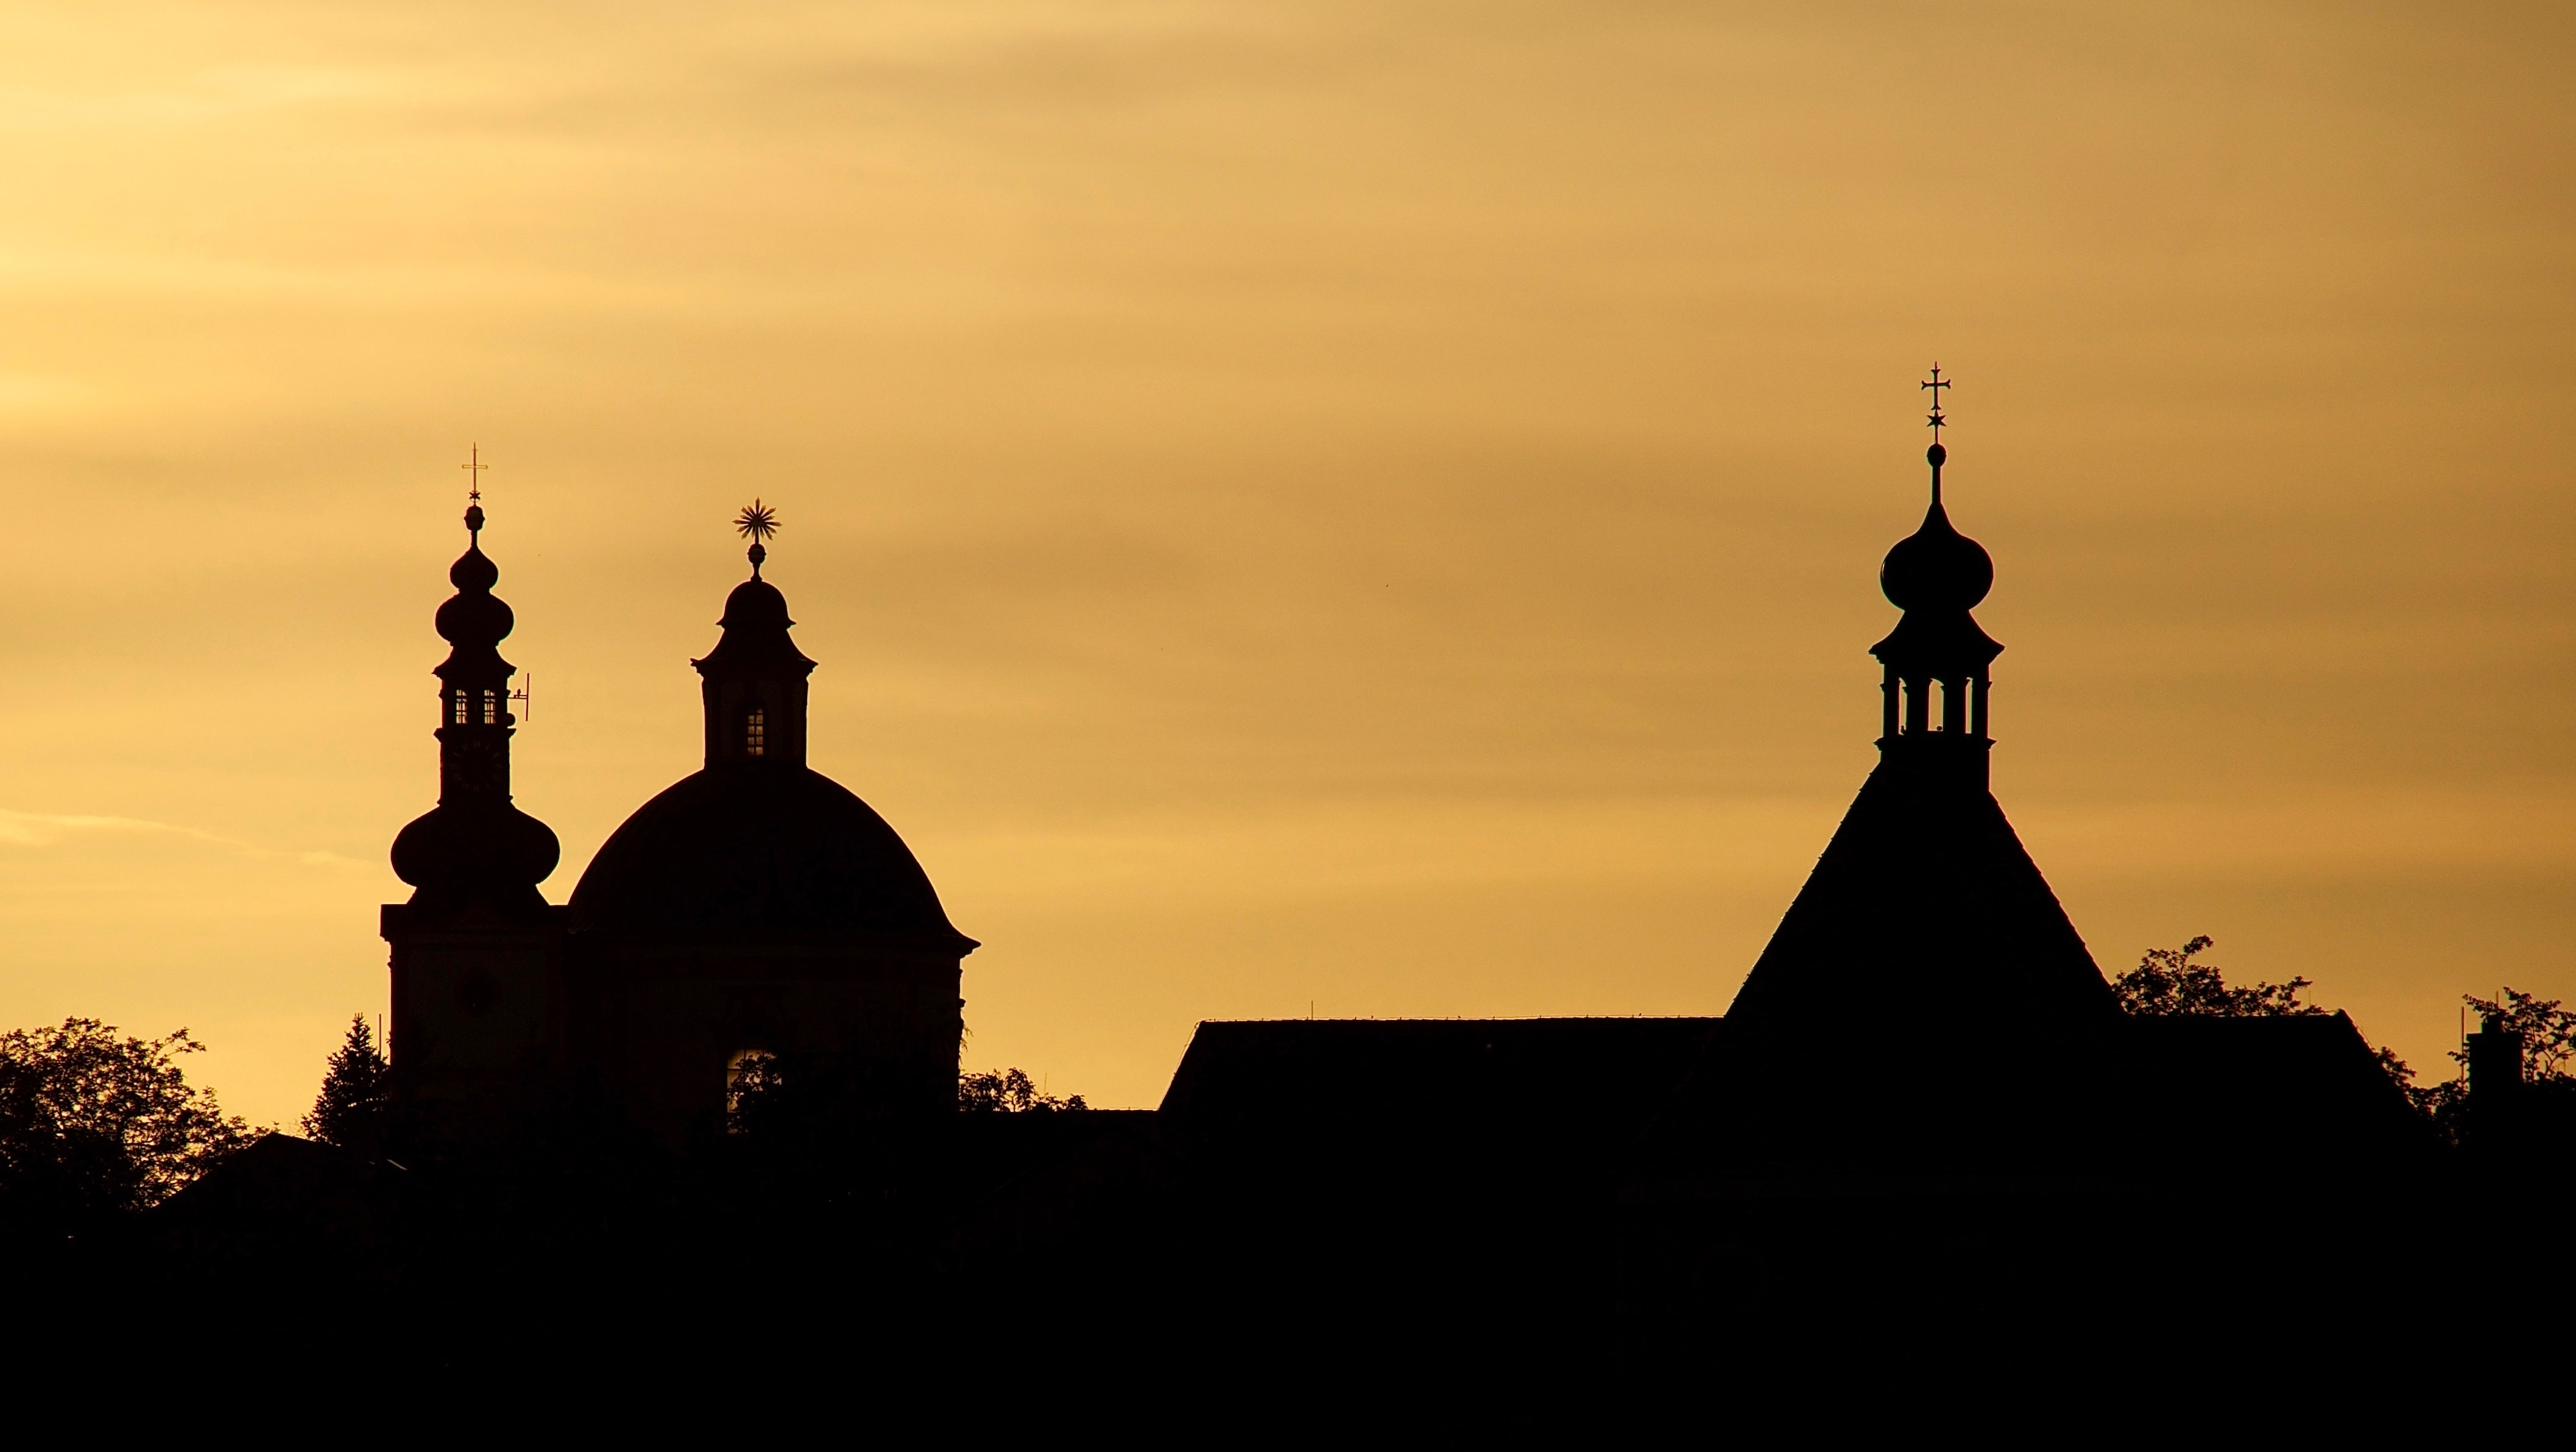 silhouette photo of cathedral